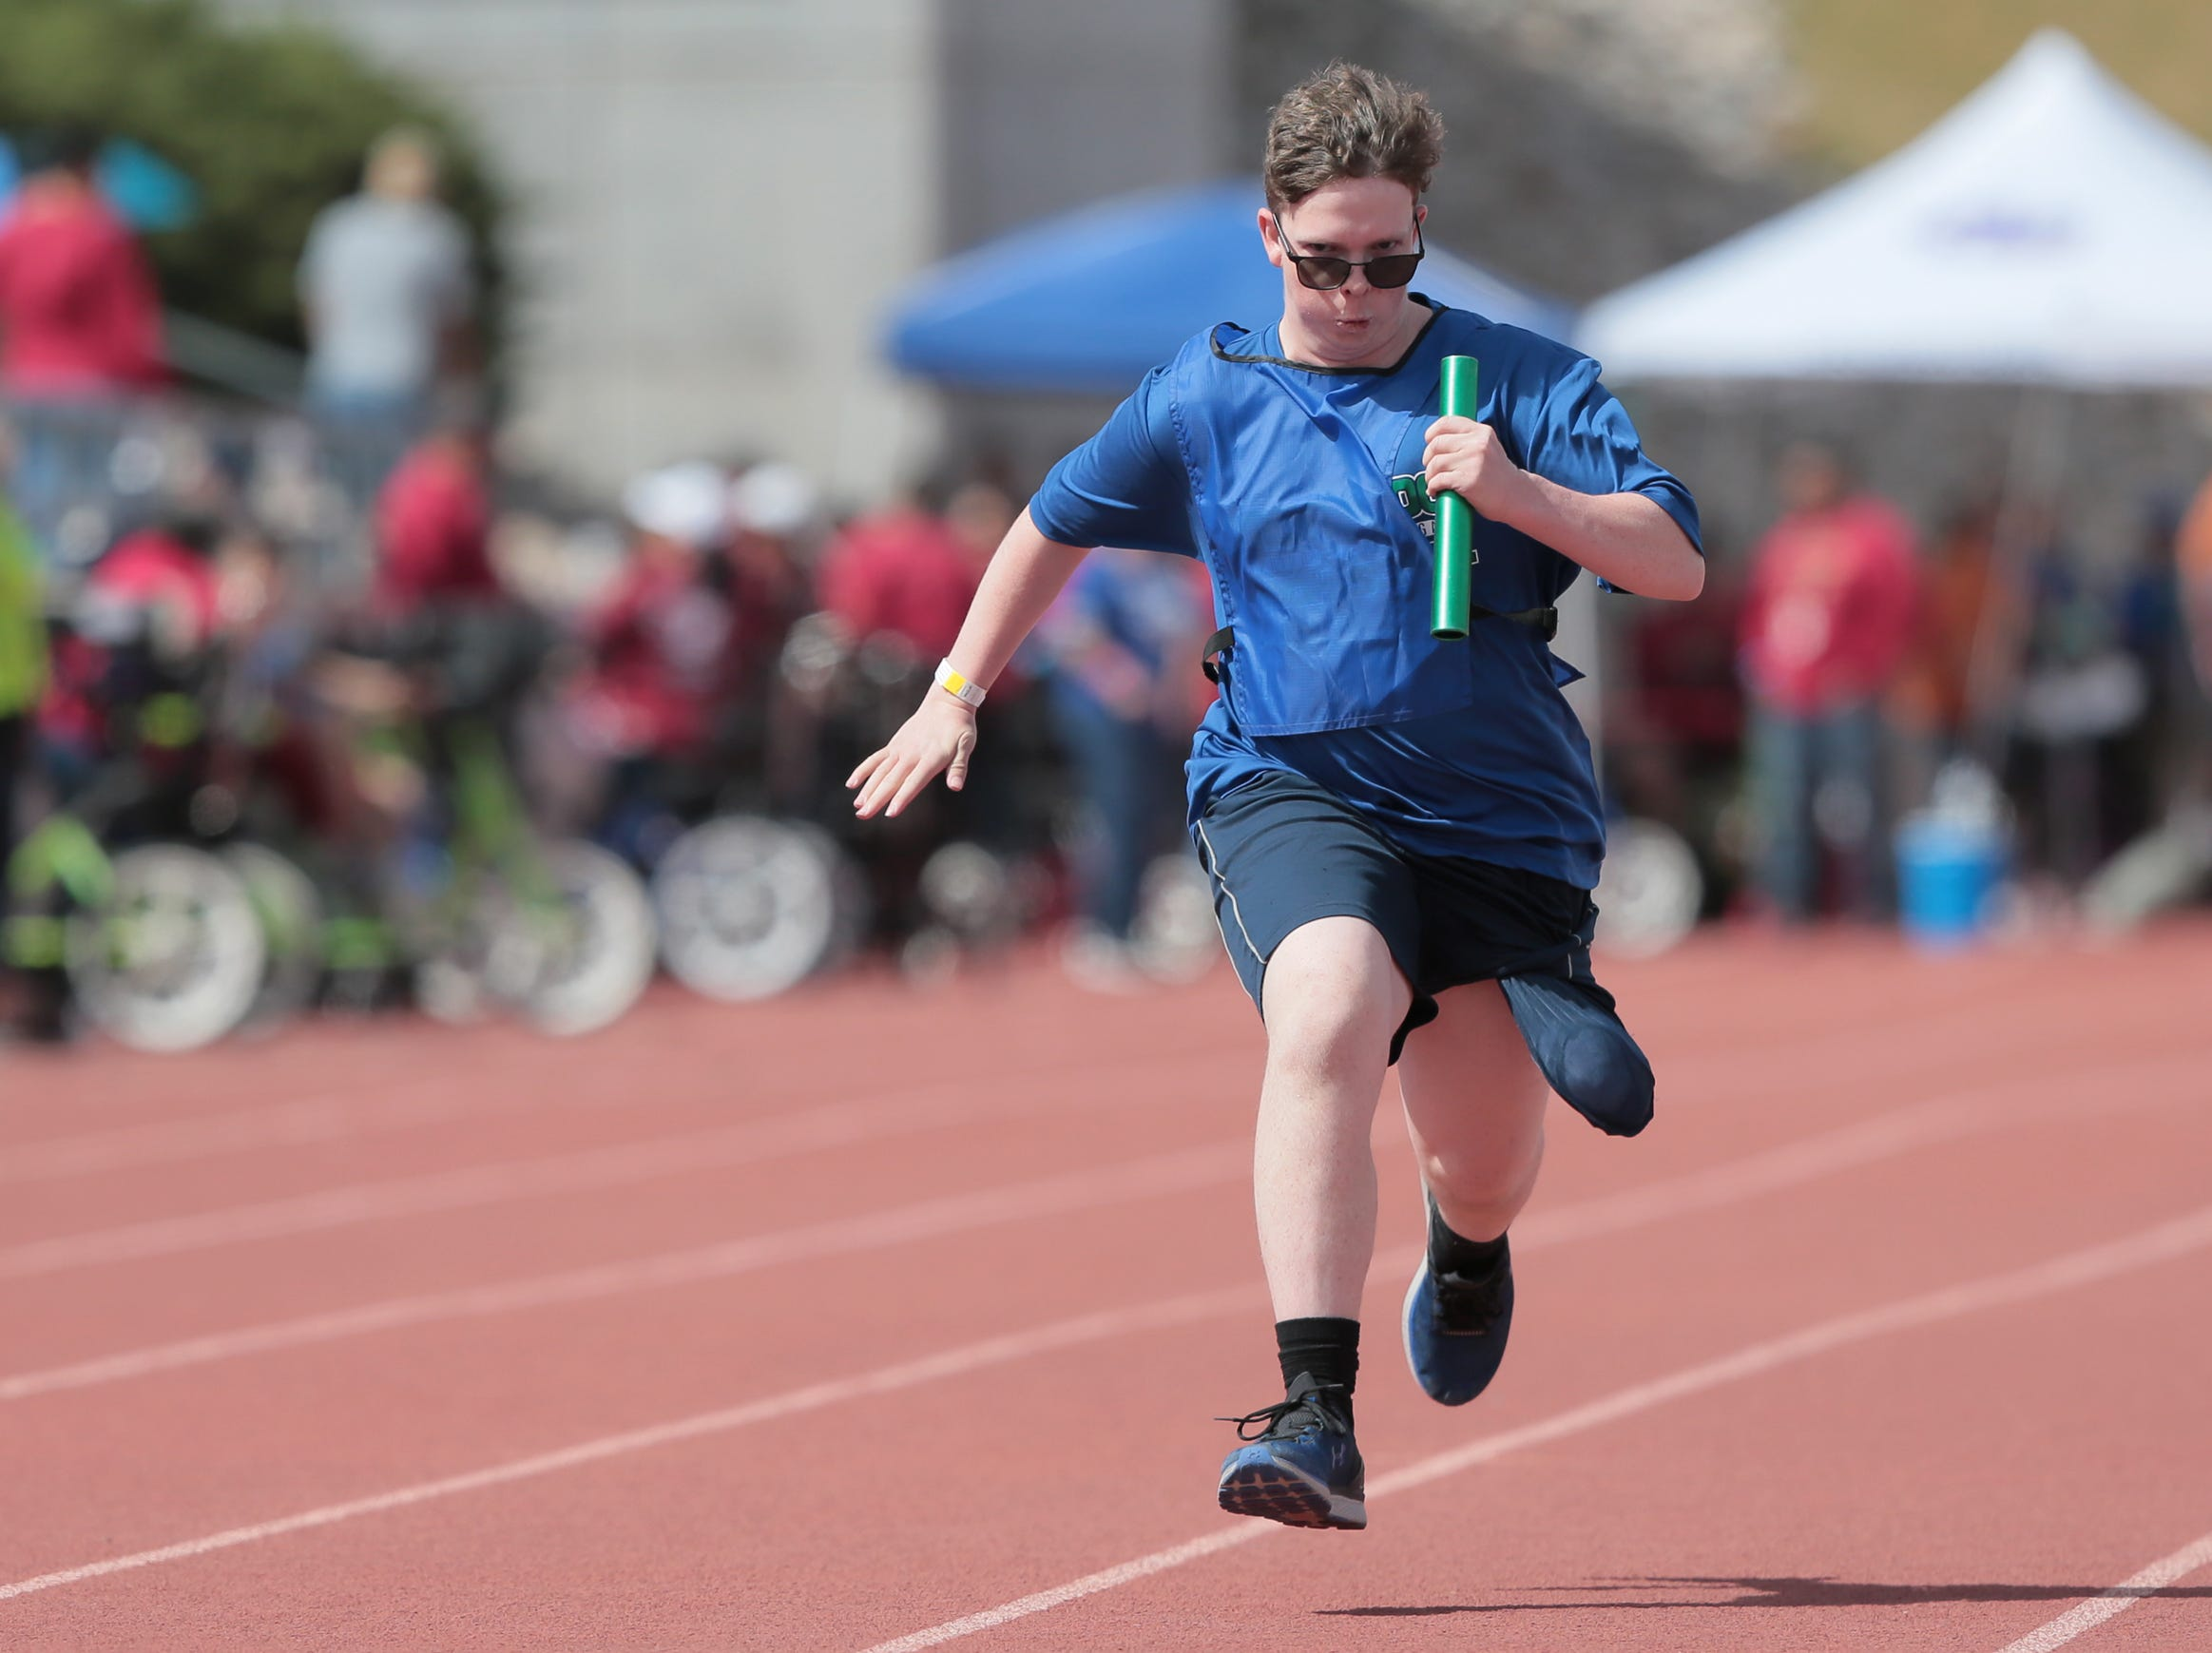 Over 1,000 students with special needs participated in the district's annual Spring Games. Students competed in a variety of track events Wednesday. Smiles filled their faces as they make their way to the finish line. High fives and hugs awaited finishers as they dash past cheerleaders and drum lines that lined the entire 100-meter homestretch.